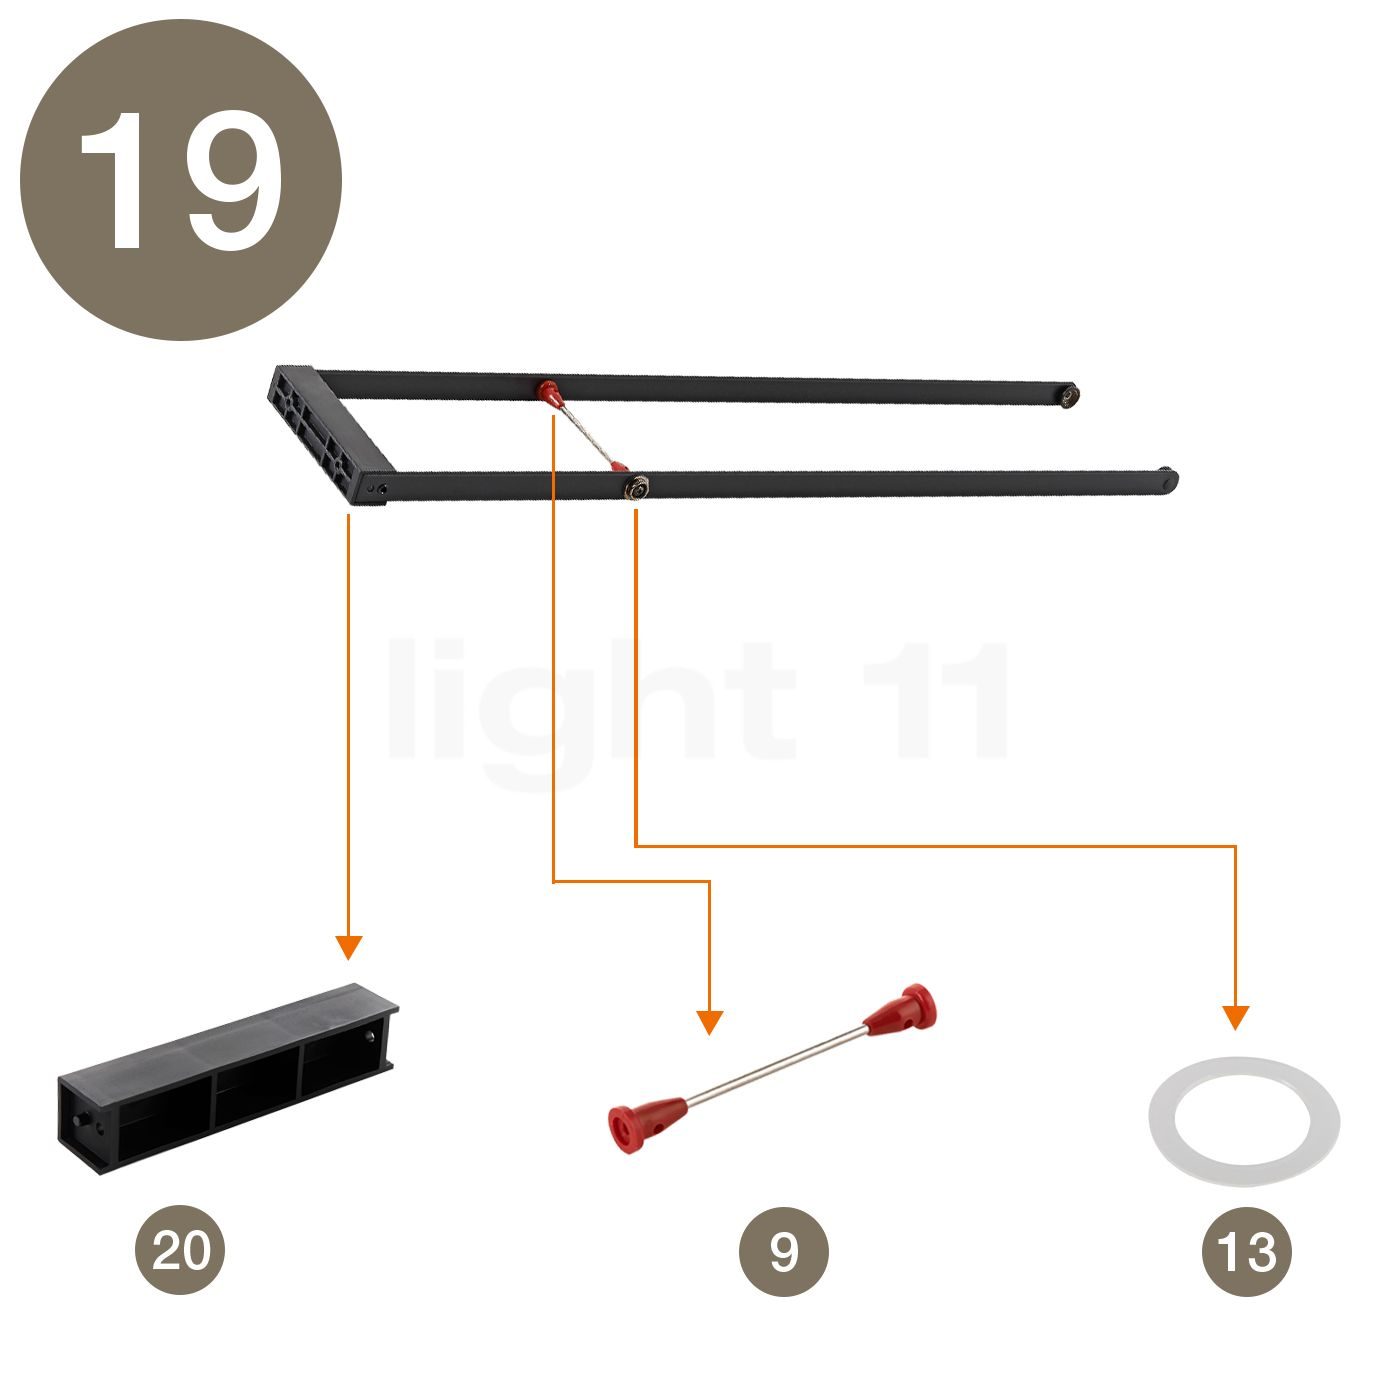 Tolomeo Floor L  Uk together with 501658845973736709 besides Dimmer L  Ikea Cool Ideas For Vidja Floor L  Ikea A76ce6437b2359fa as well Designers Fountain Led33001 Orb Barrow Modern Oil Rubbed Bronze 917685fbbbdf644b as well Retro Swing Arm Wall L glass Shade Vintage Wall Sconceswall 68b6370c1bdc0596. on artemide lighting tolomeo mega wall l